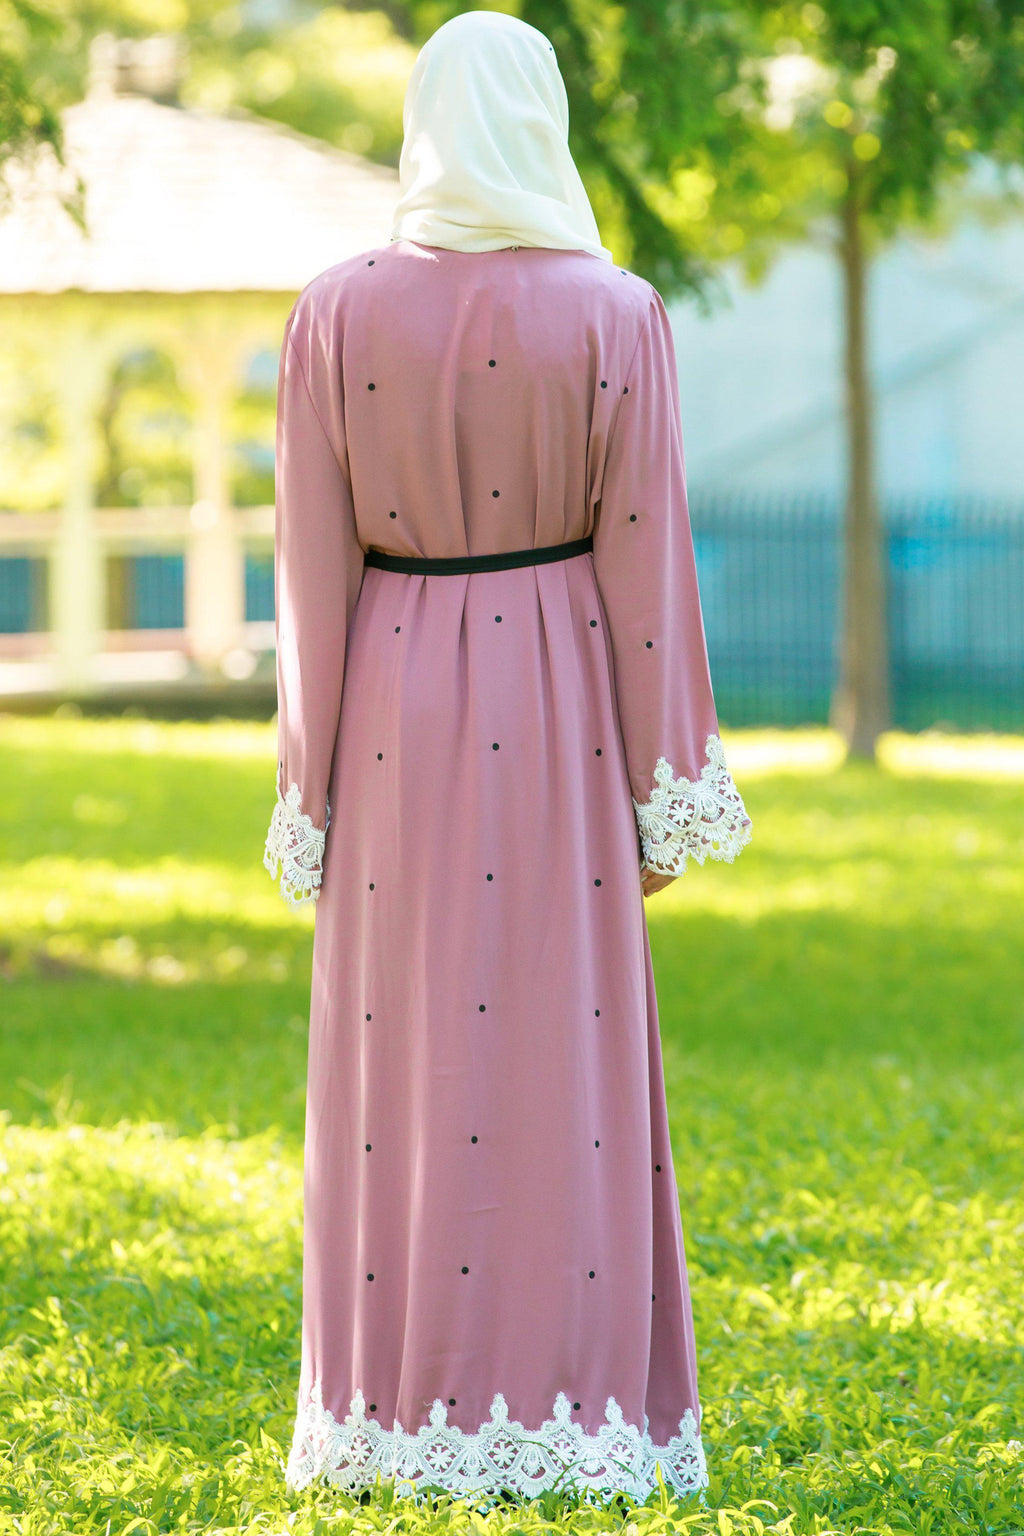 Blush Polka Dot Lace Open Front Abaya - Abaya, Hijabs, Jilbabs, on sale now at UrbanModesty.com